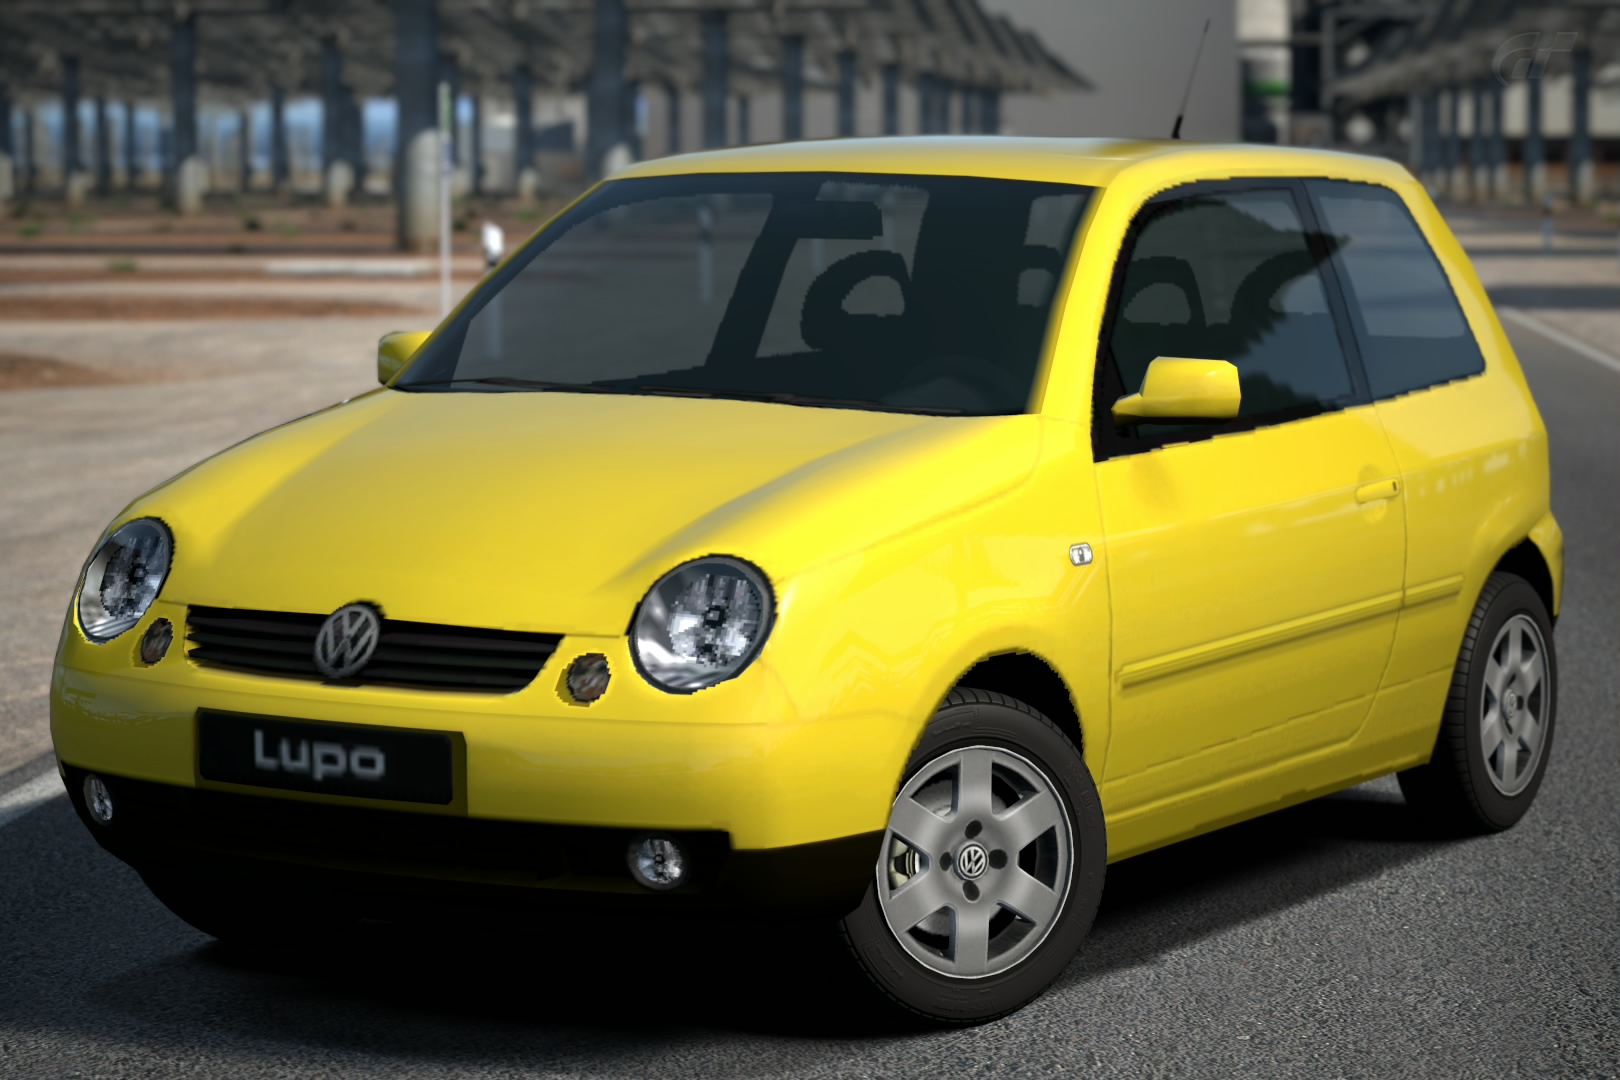 volkswagen lupo 1 4 39 02 gran turismo wiki fandom powered by wikia. Black Bedroom Furniture Sets. Home Design Ideas